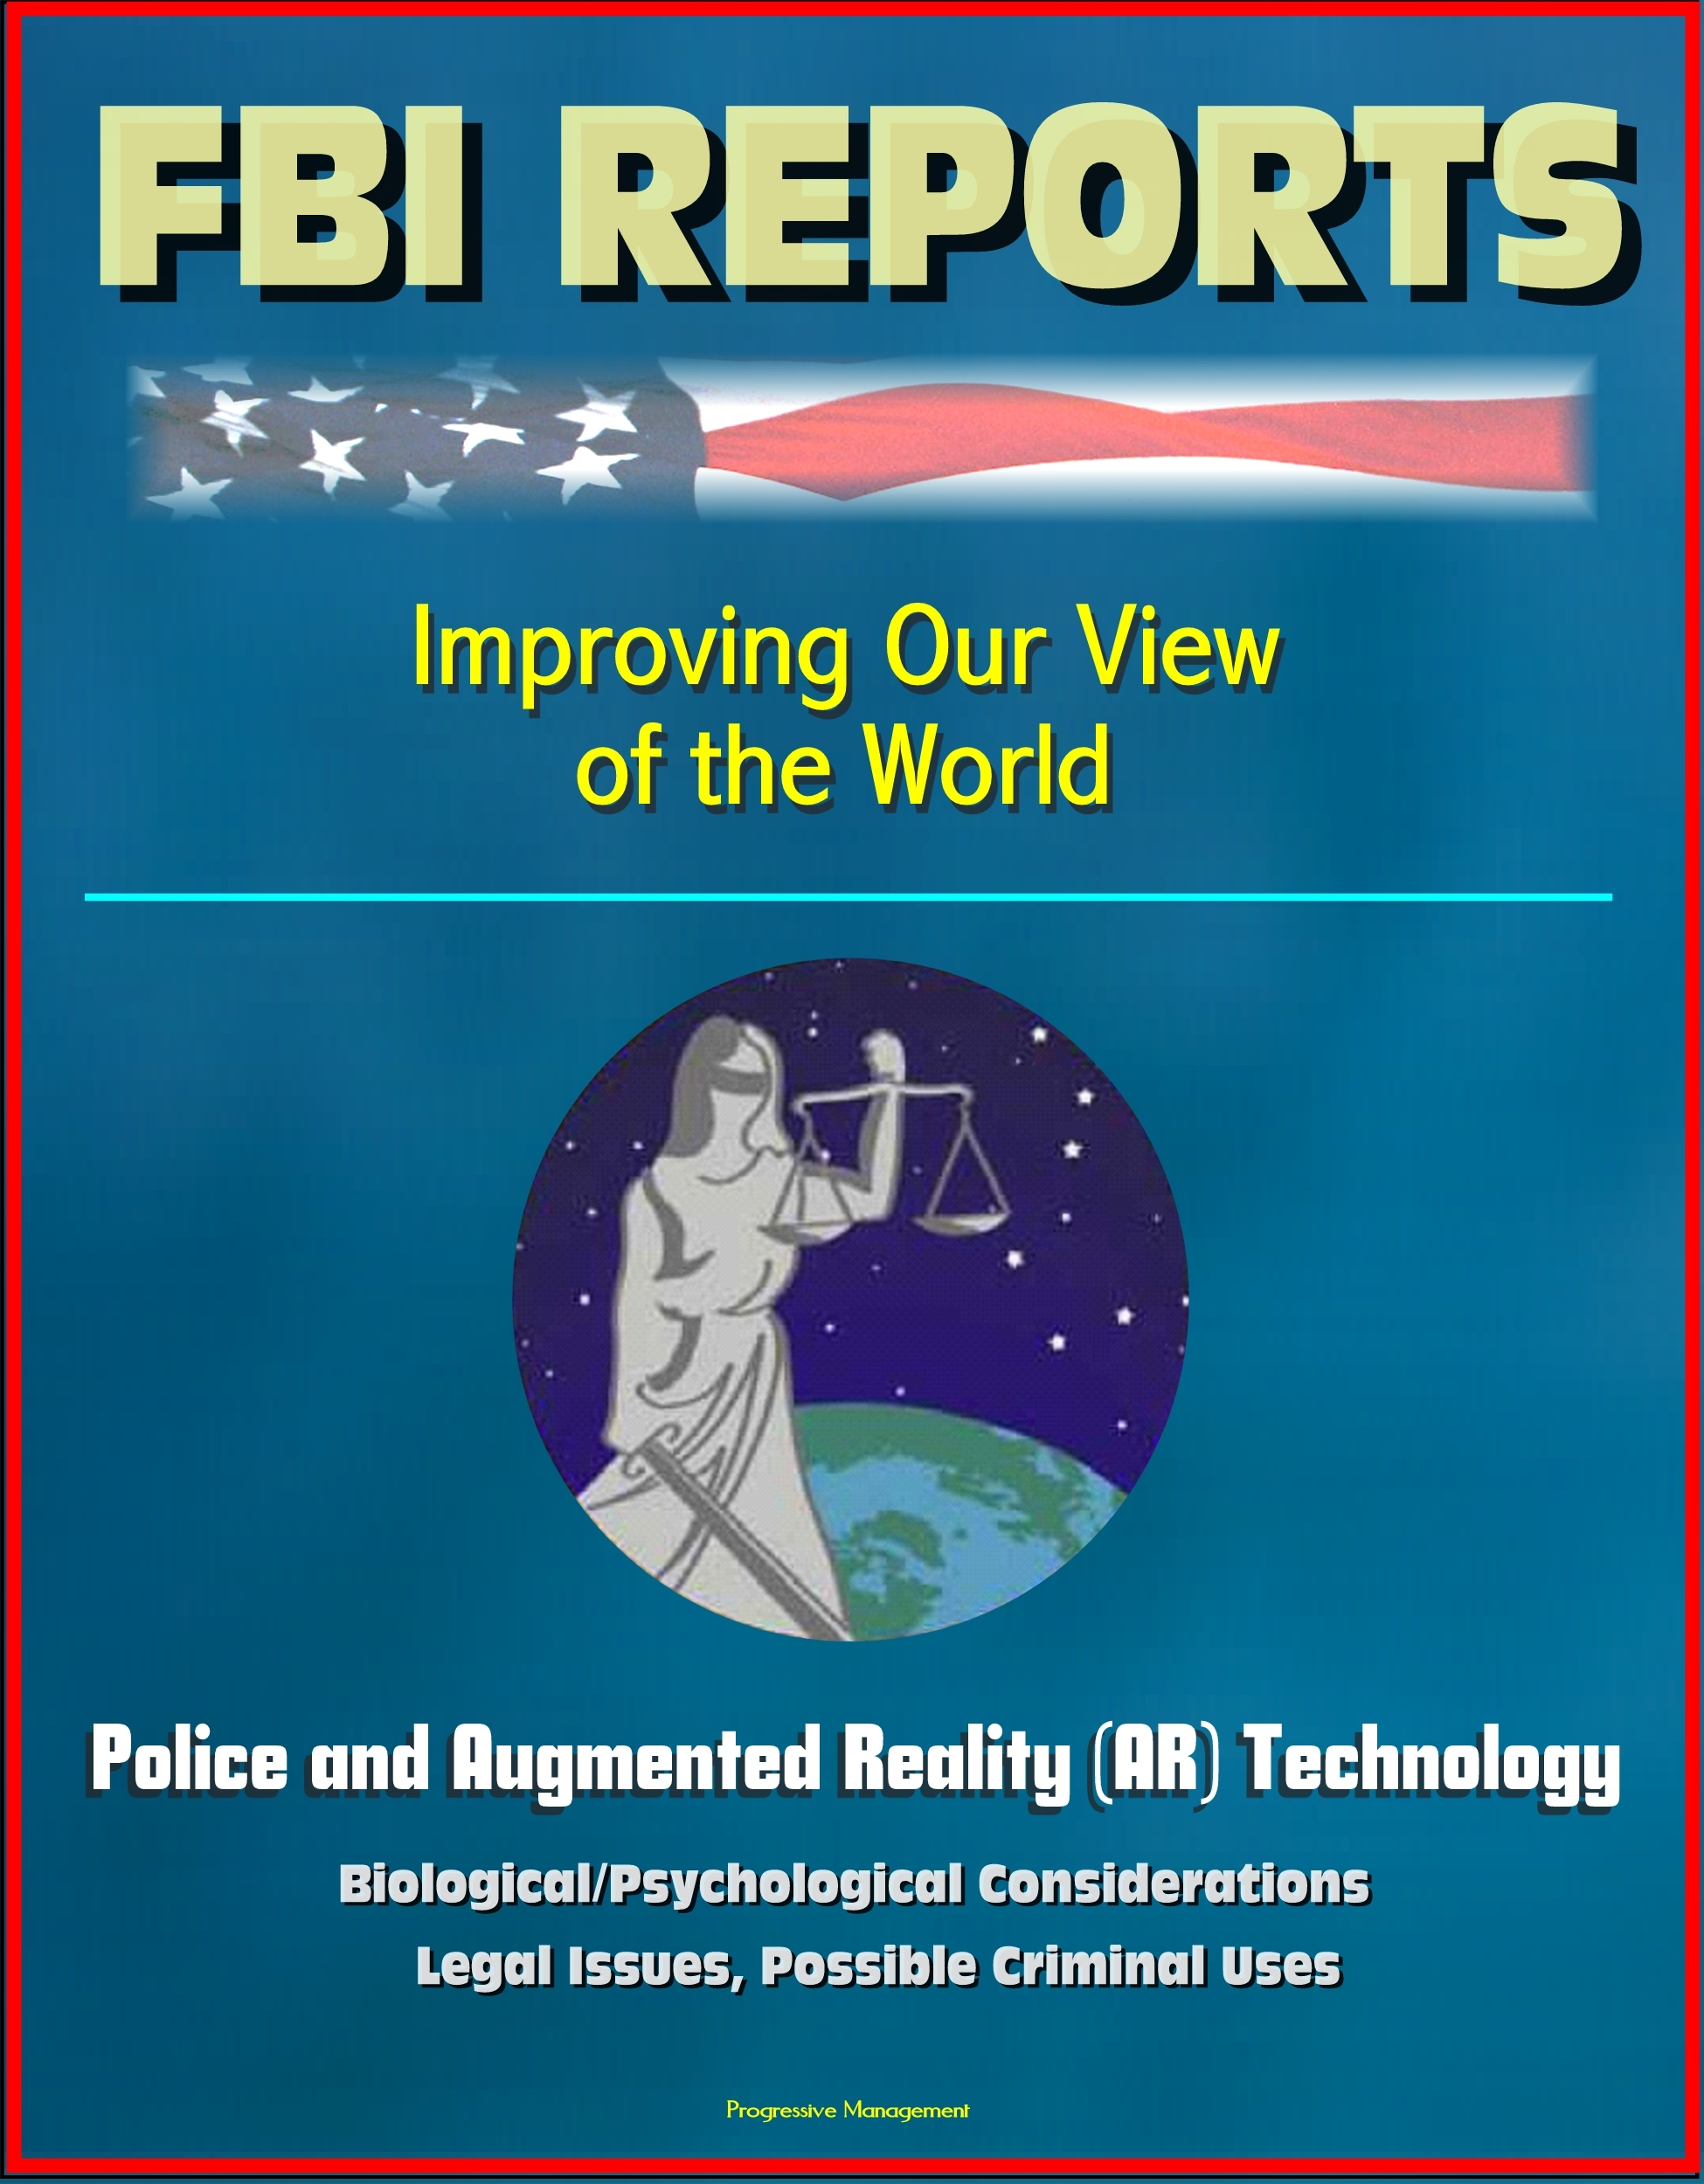 FBI Report: Improving Our View of the World: Police and Augmented Reality (AR) Technology - Biological/Psychological Considerations, Legal Issues, Possible Criminal Uses